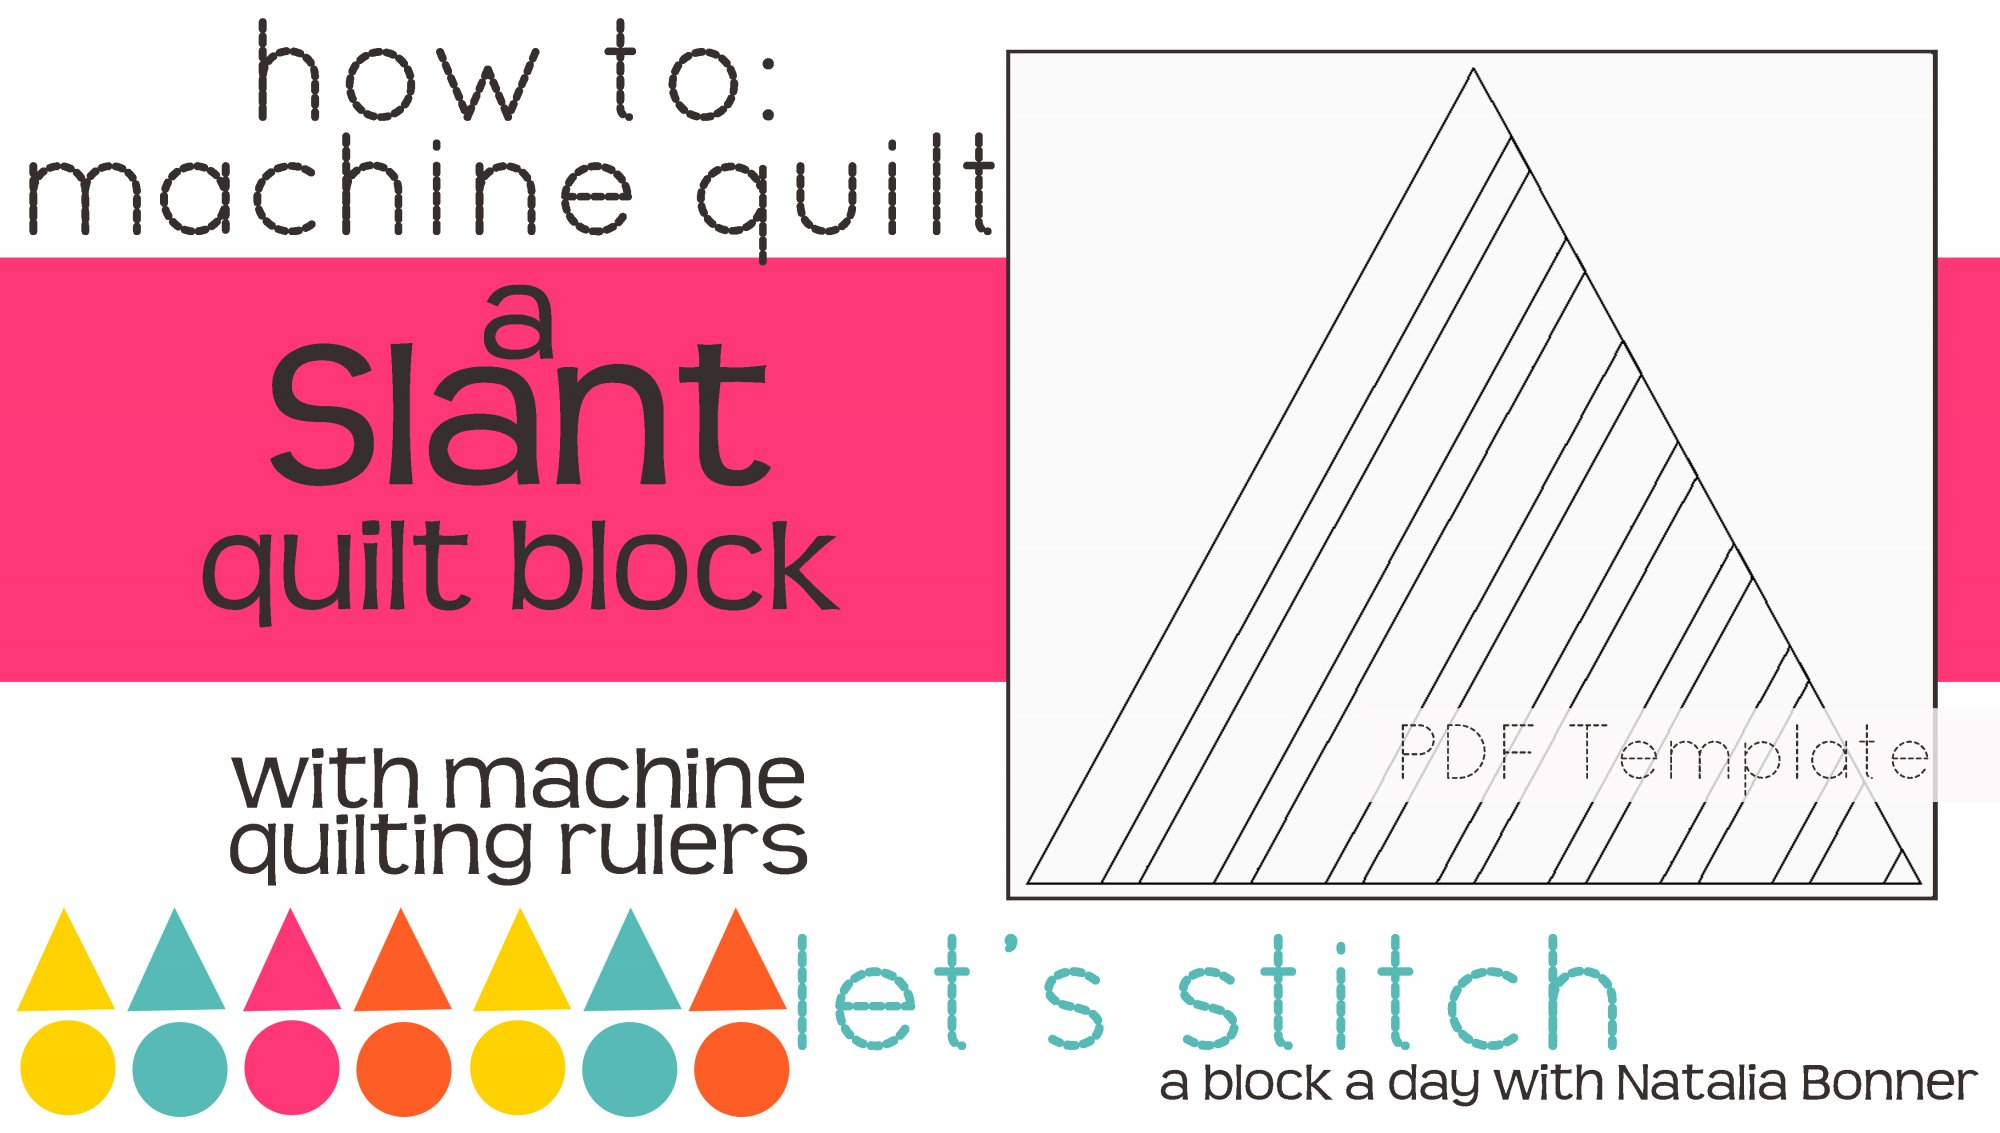 Let's Stitch - A Block a Day With Natalia Bonner - PDF - Slant